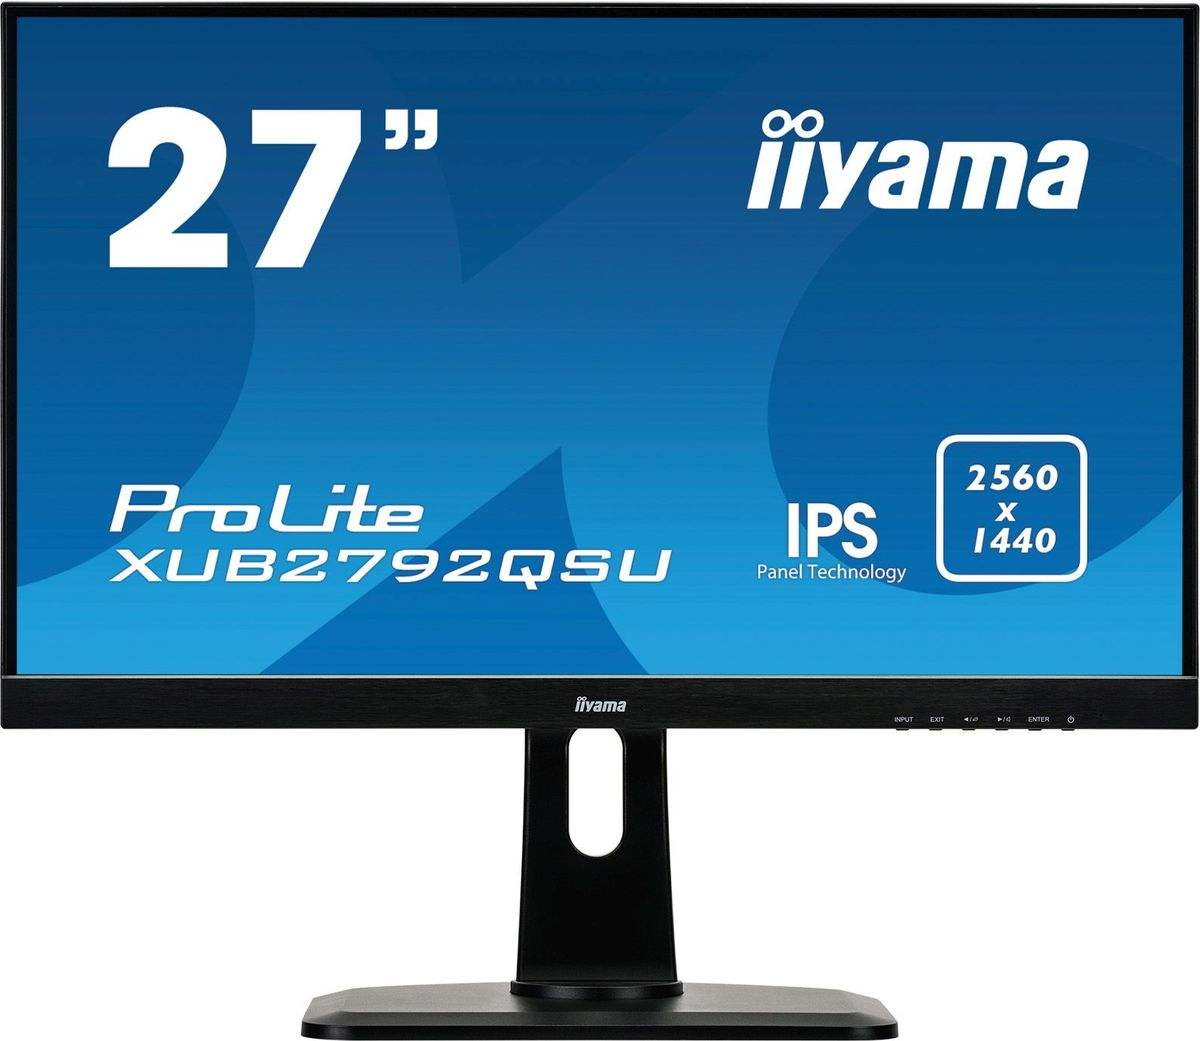 iiyama XUB2792QSU-B1, Black мониторXUB2792QSU-B127 ULTRA SLIM LINE, 2560x1440 WQHD, IPS-panel, 5ms, FreeSync, 13cm height adj. stand, 350cd/m?, >12mlnln:1 ACR, VGA, HDMI, DisplayPort, Speakers, USB-HUB(2x3.0), TCO6